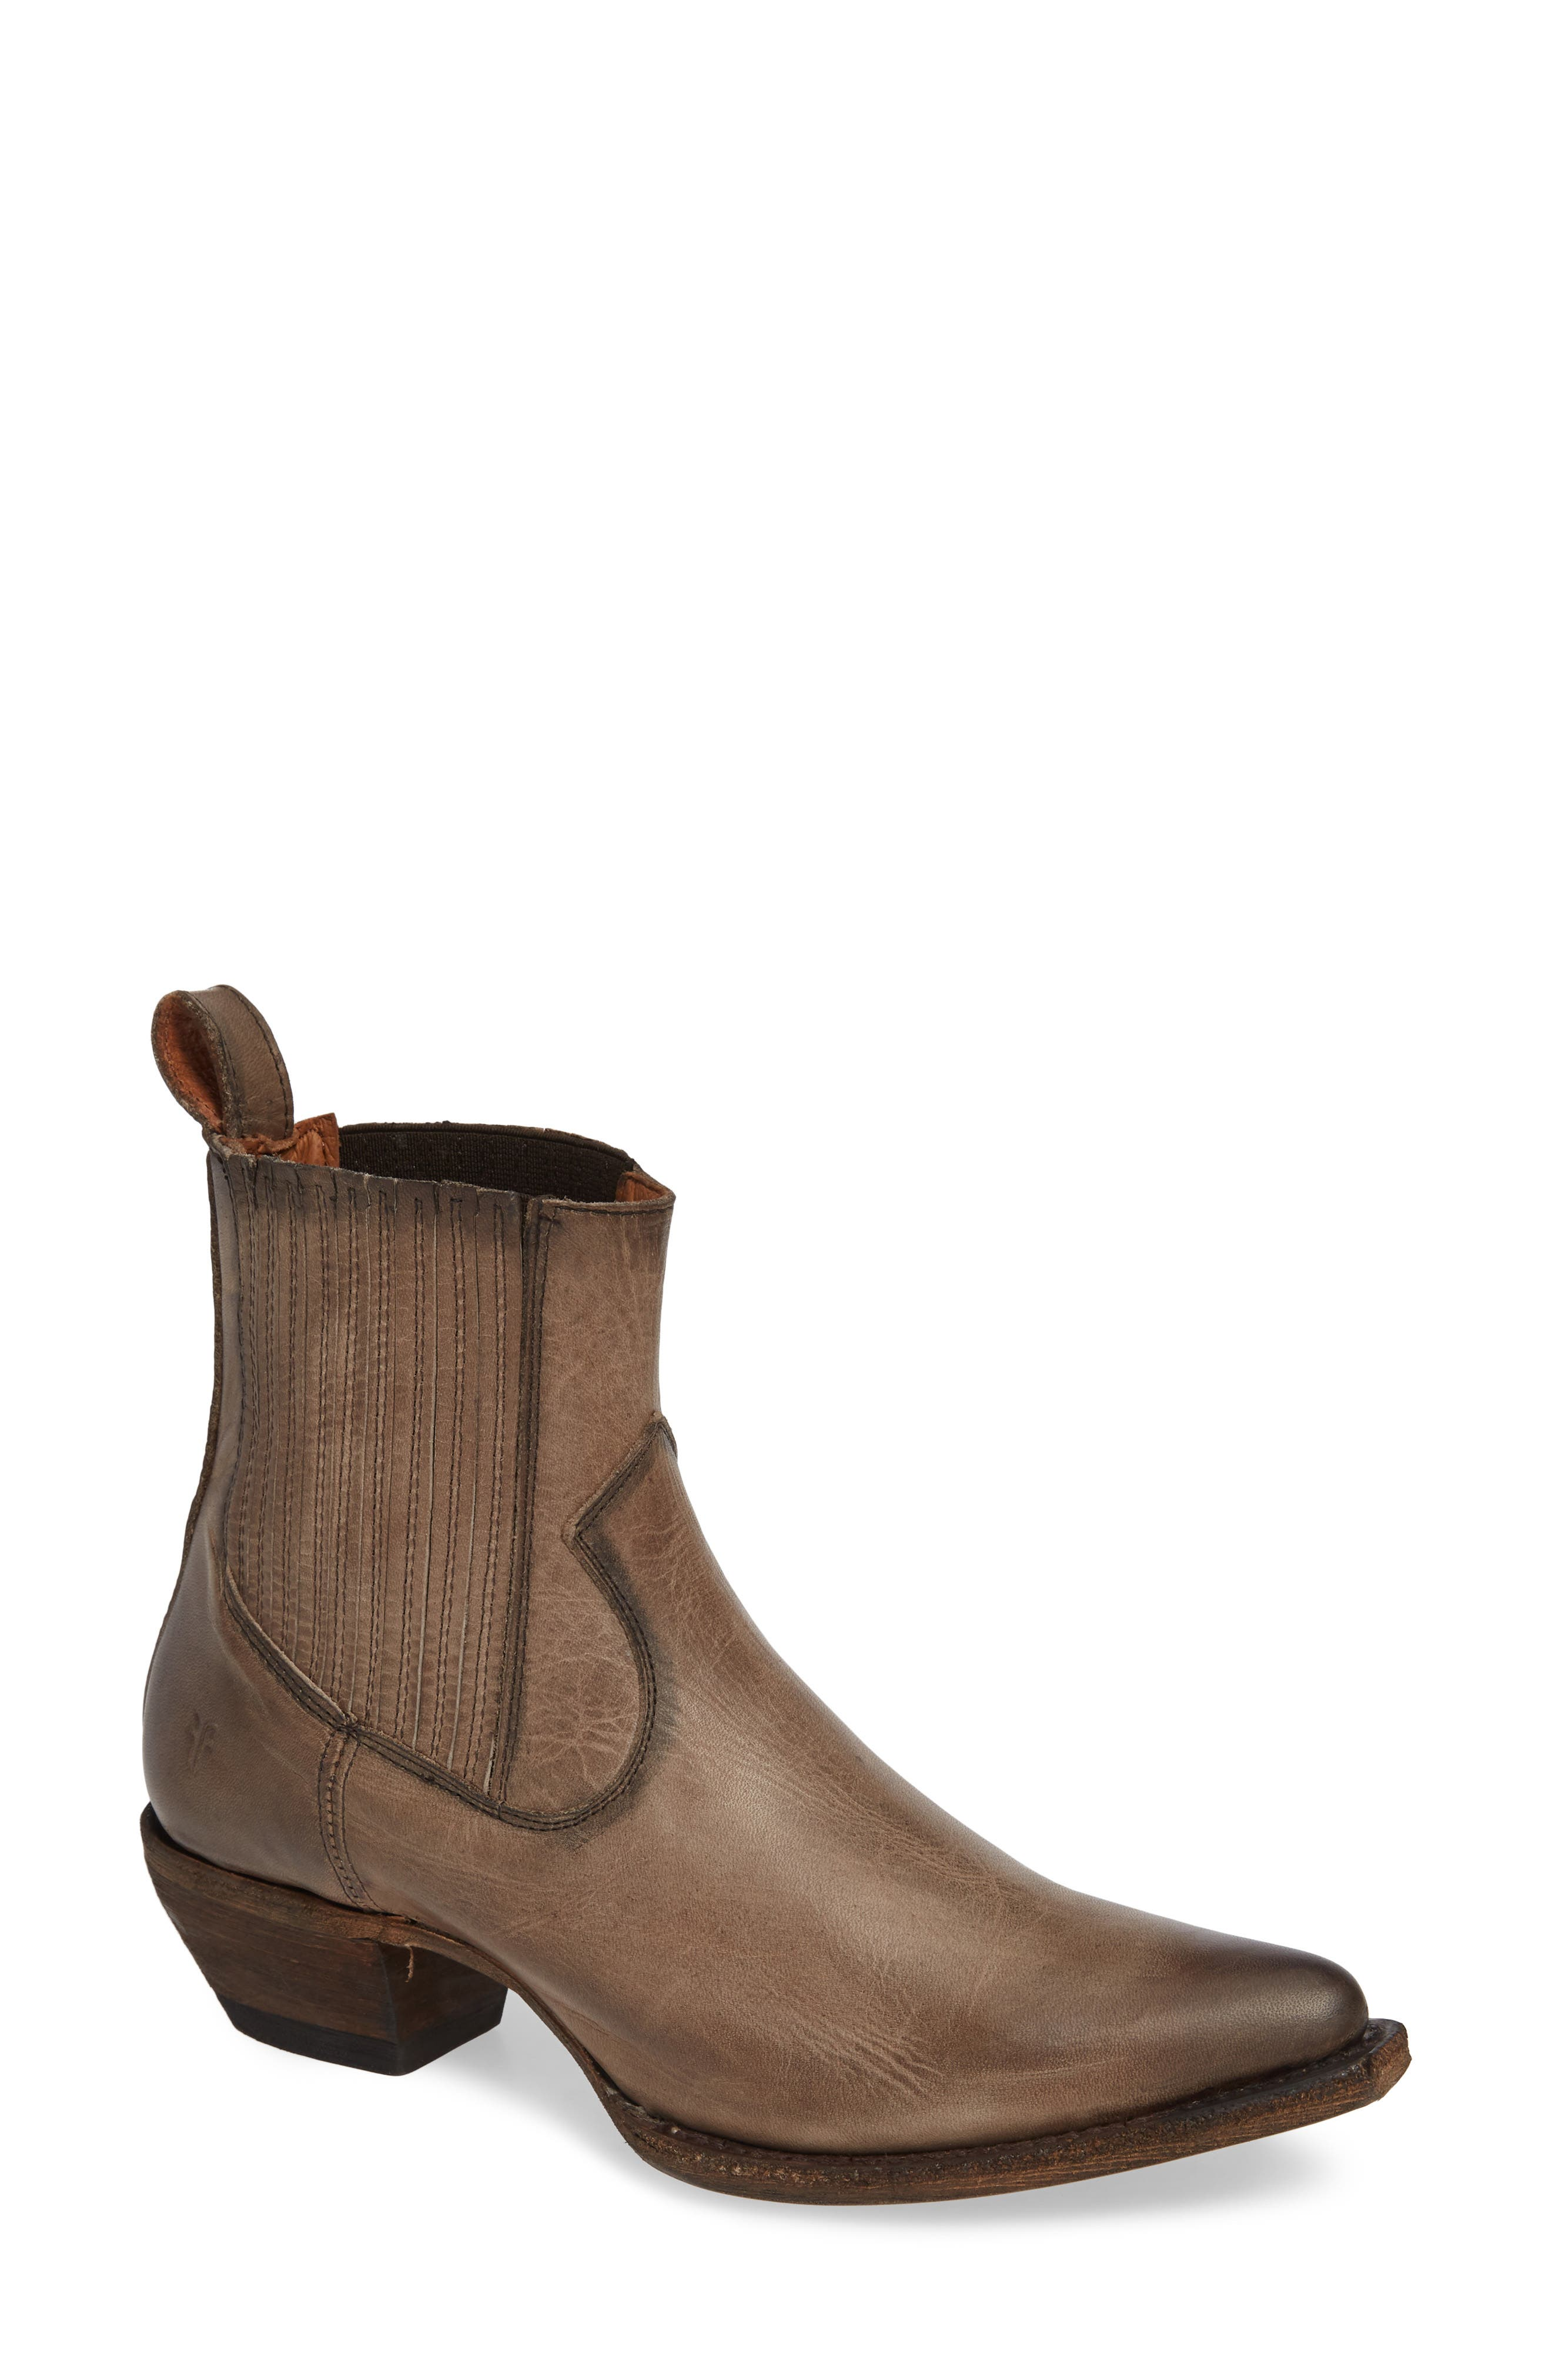 FRYE, Sacha Western Bootie, Main thumbnail 1, color, STONE LEATHER